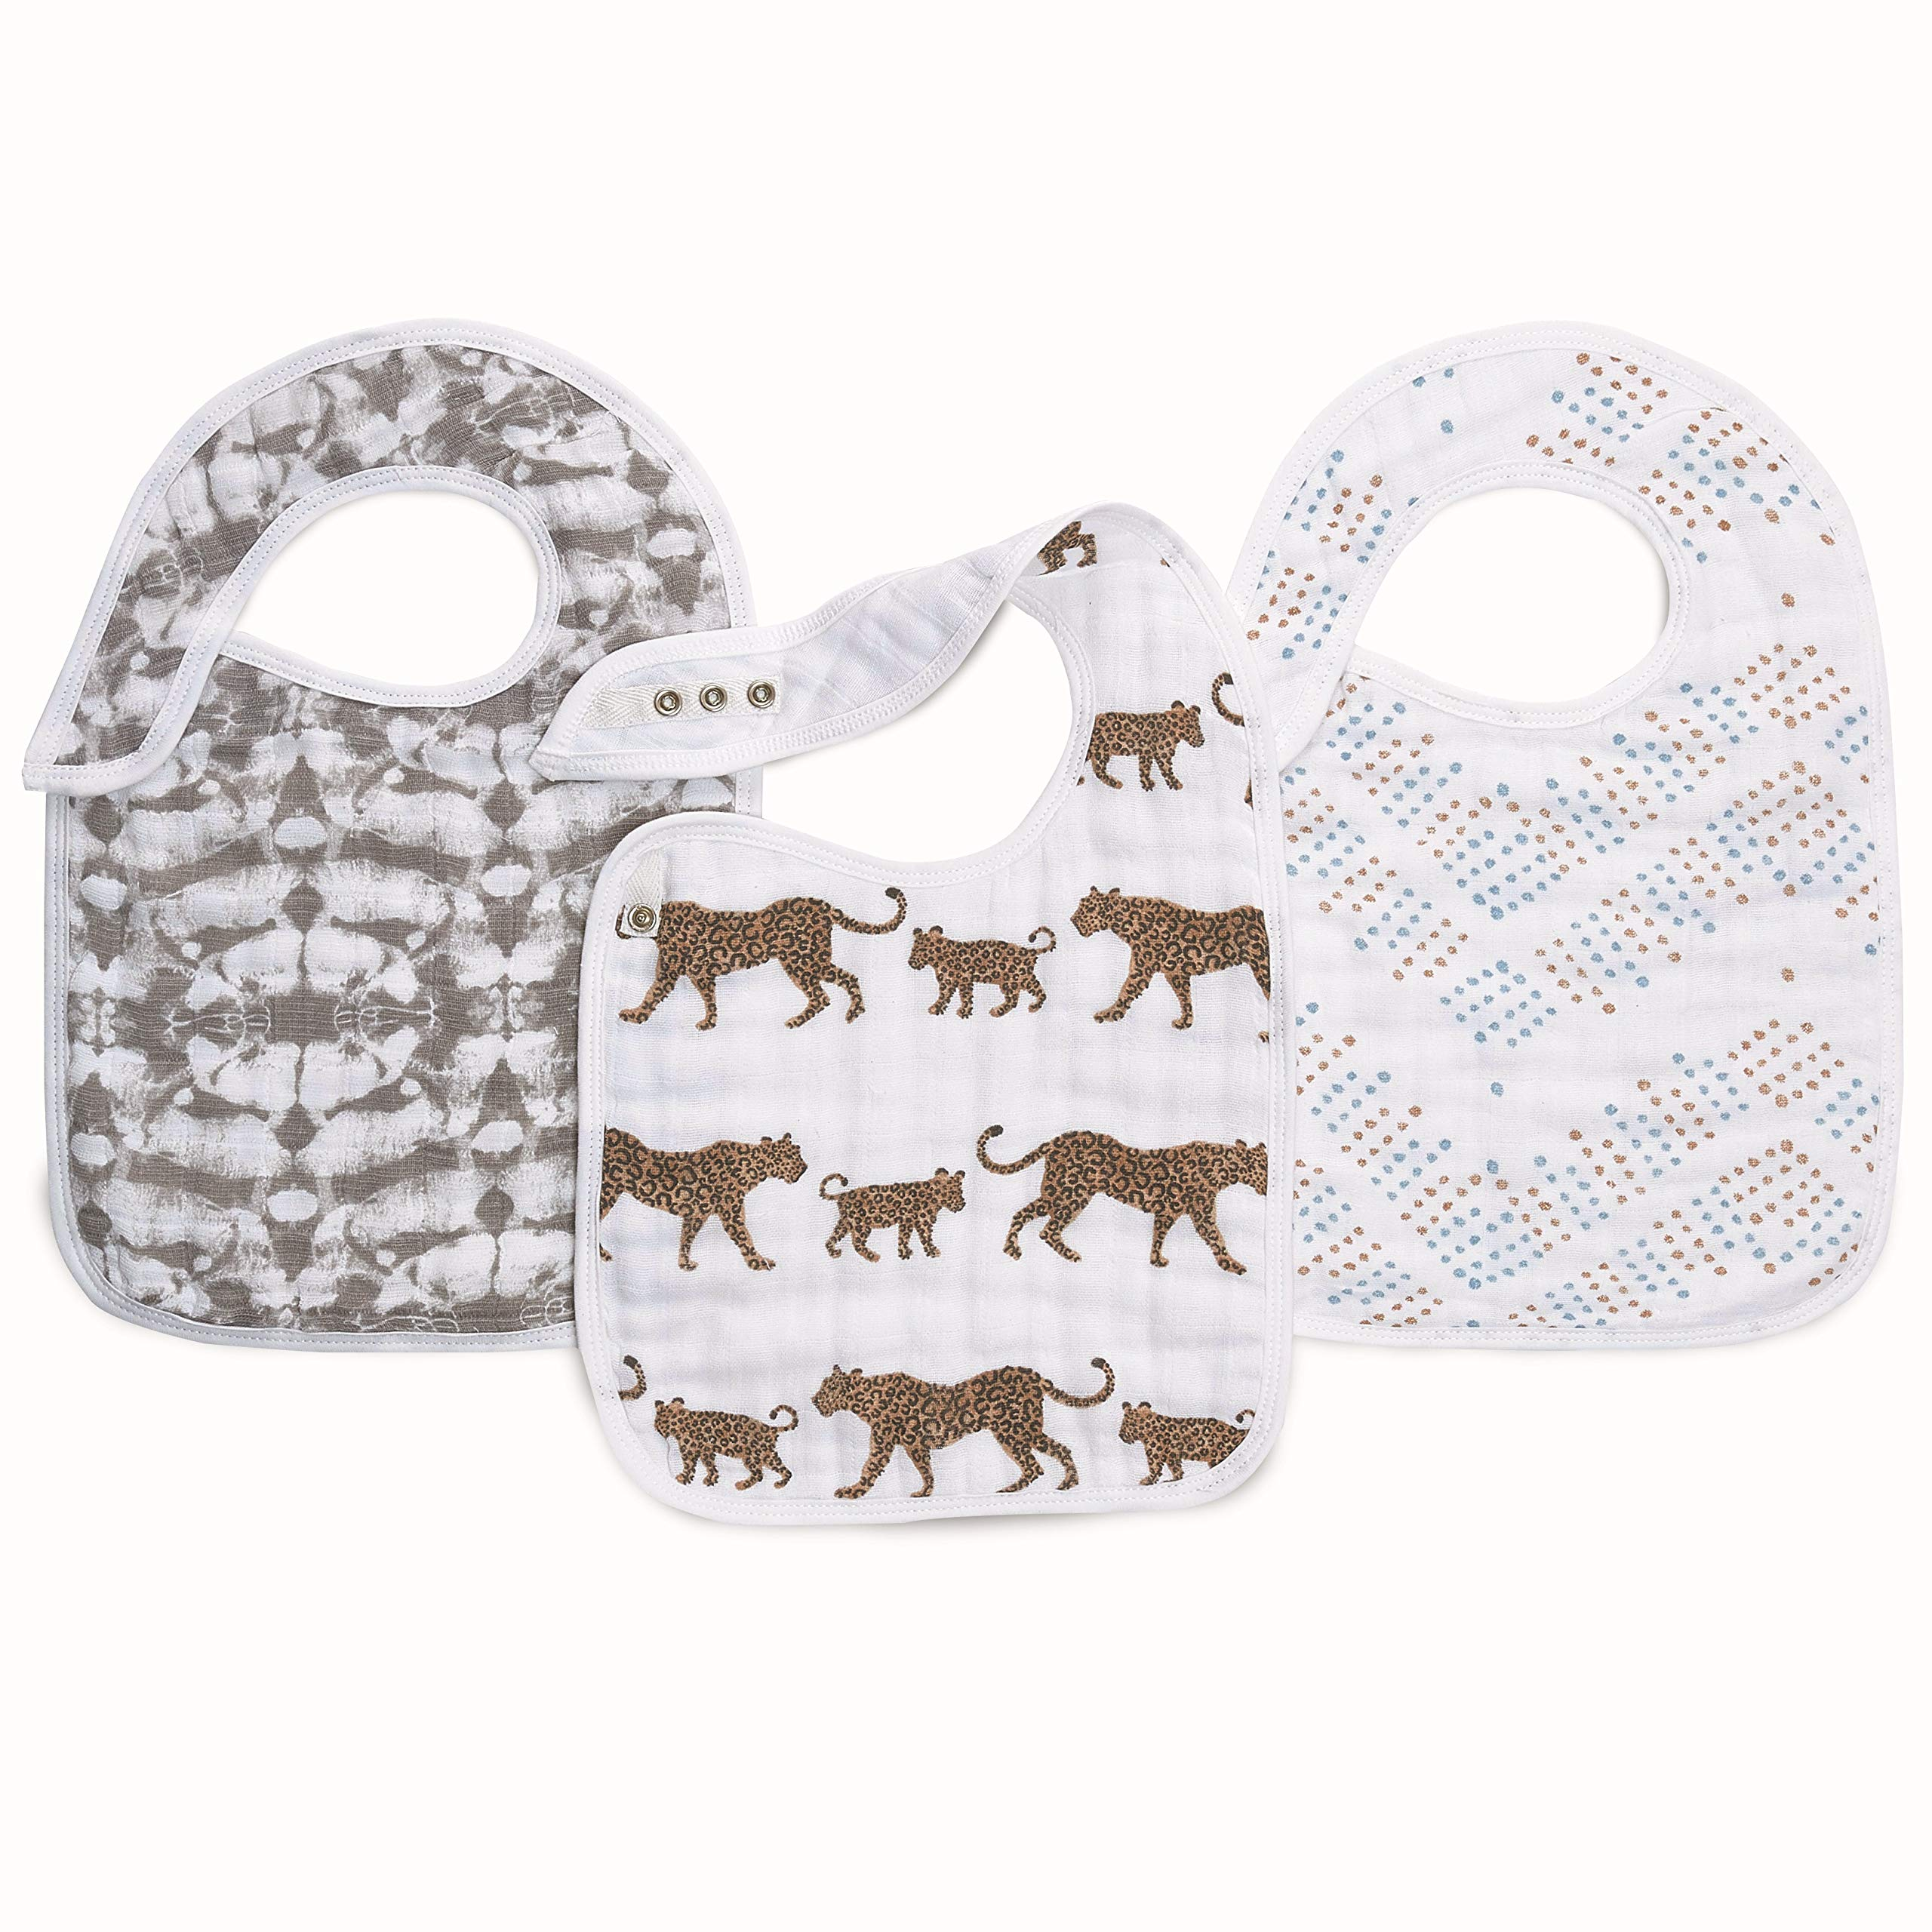 aden + anais Snap Baby Bib, 100% Cotton Muslin, 3 Layer Burp Cloth, Super Soft & Absorbent for Infants, Newborns and Toddlers, Adjustable with Snaps, 3 Pack, Hear Me Roar